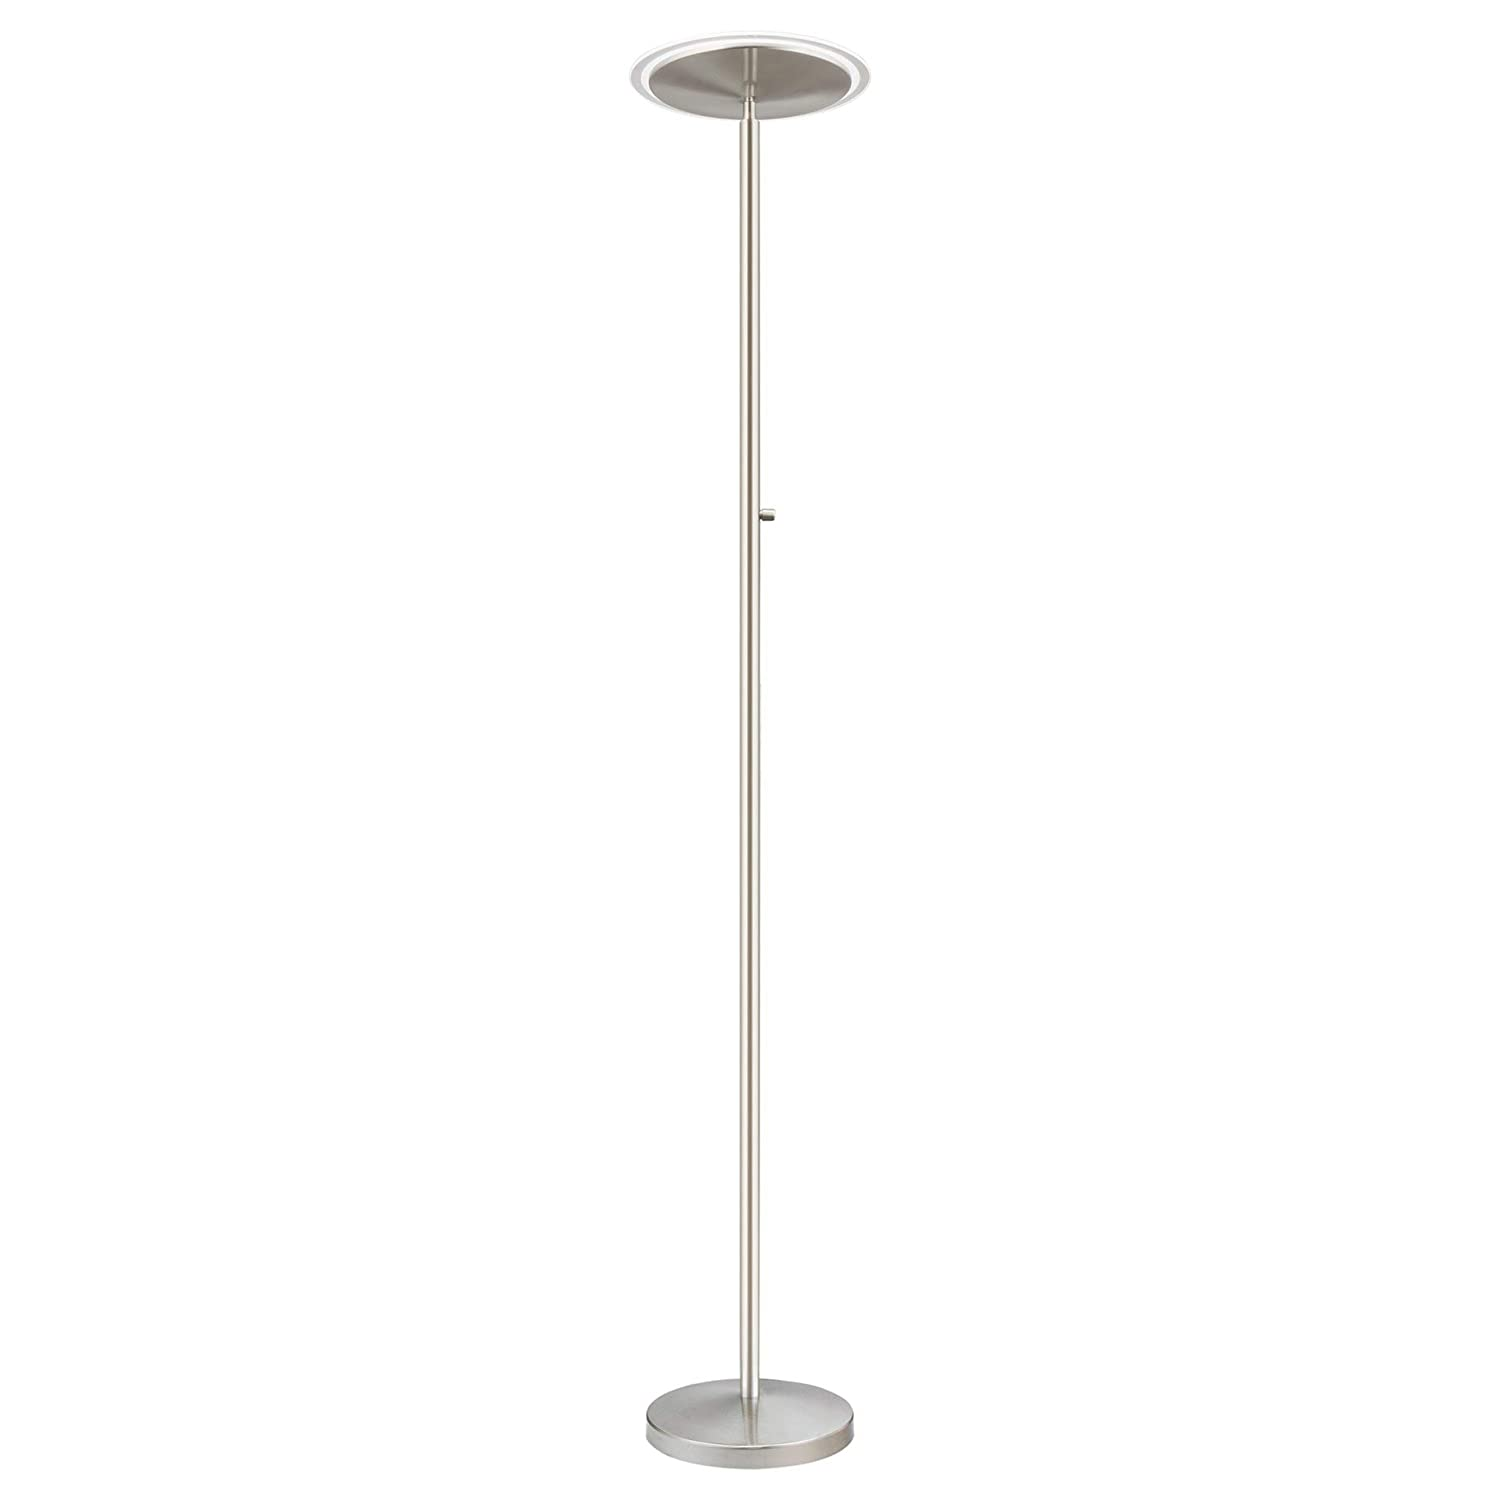 Timer and Wall Switch Compatible Brushed Nickel Finish RV-F216-6217-BN Adjustable Head 36W, 300W eq. 3000k Warm White Light Kira Home Horizon 70 Modern LED Torchiere Floor Lamp Dimmable Glass Diffuser